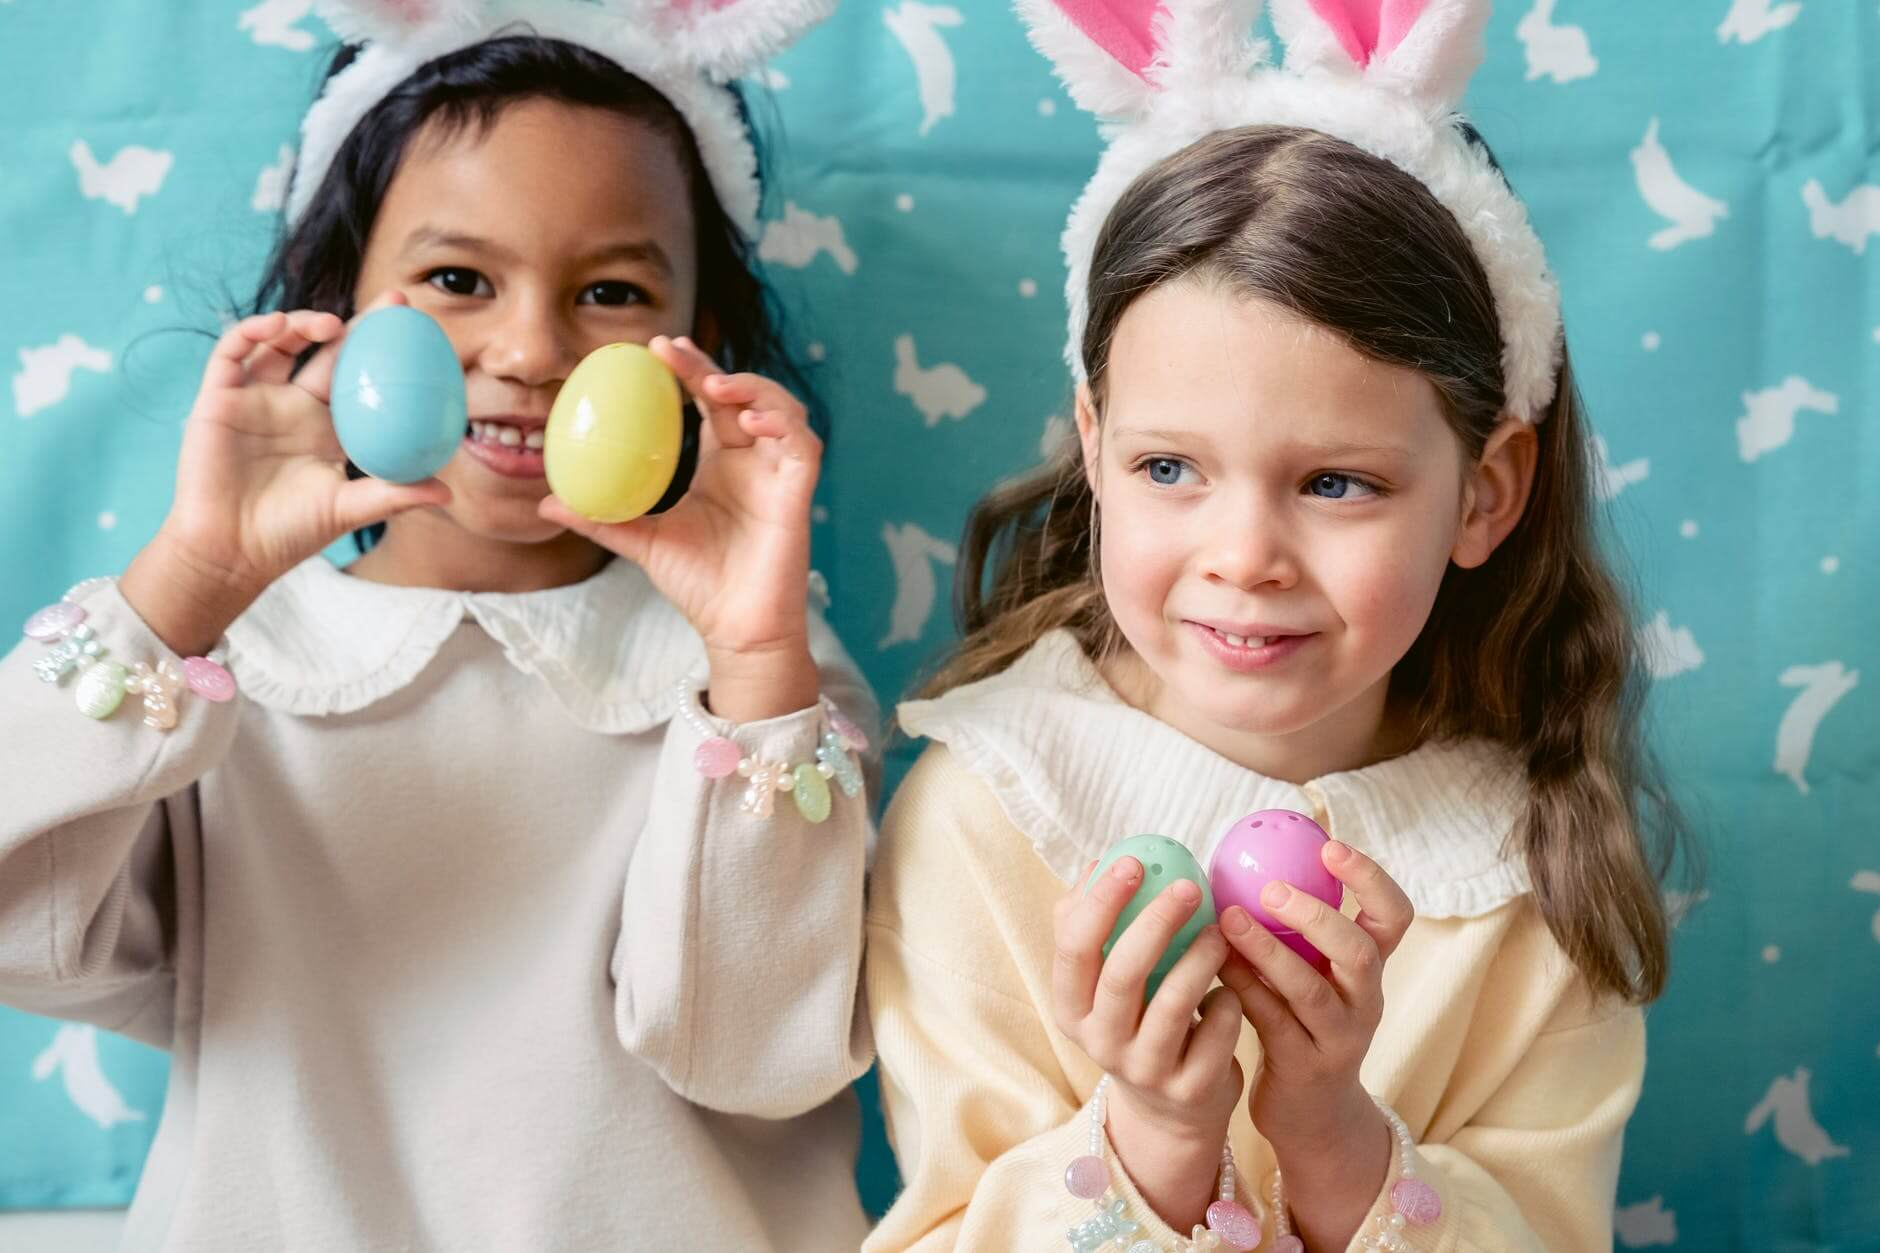 glad diverse girls playing with toy eggs